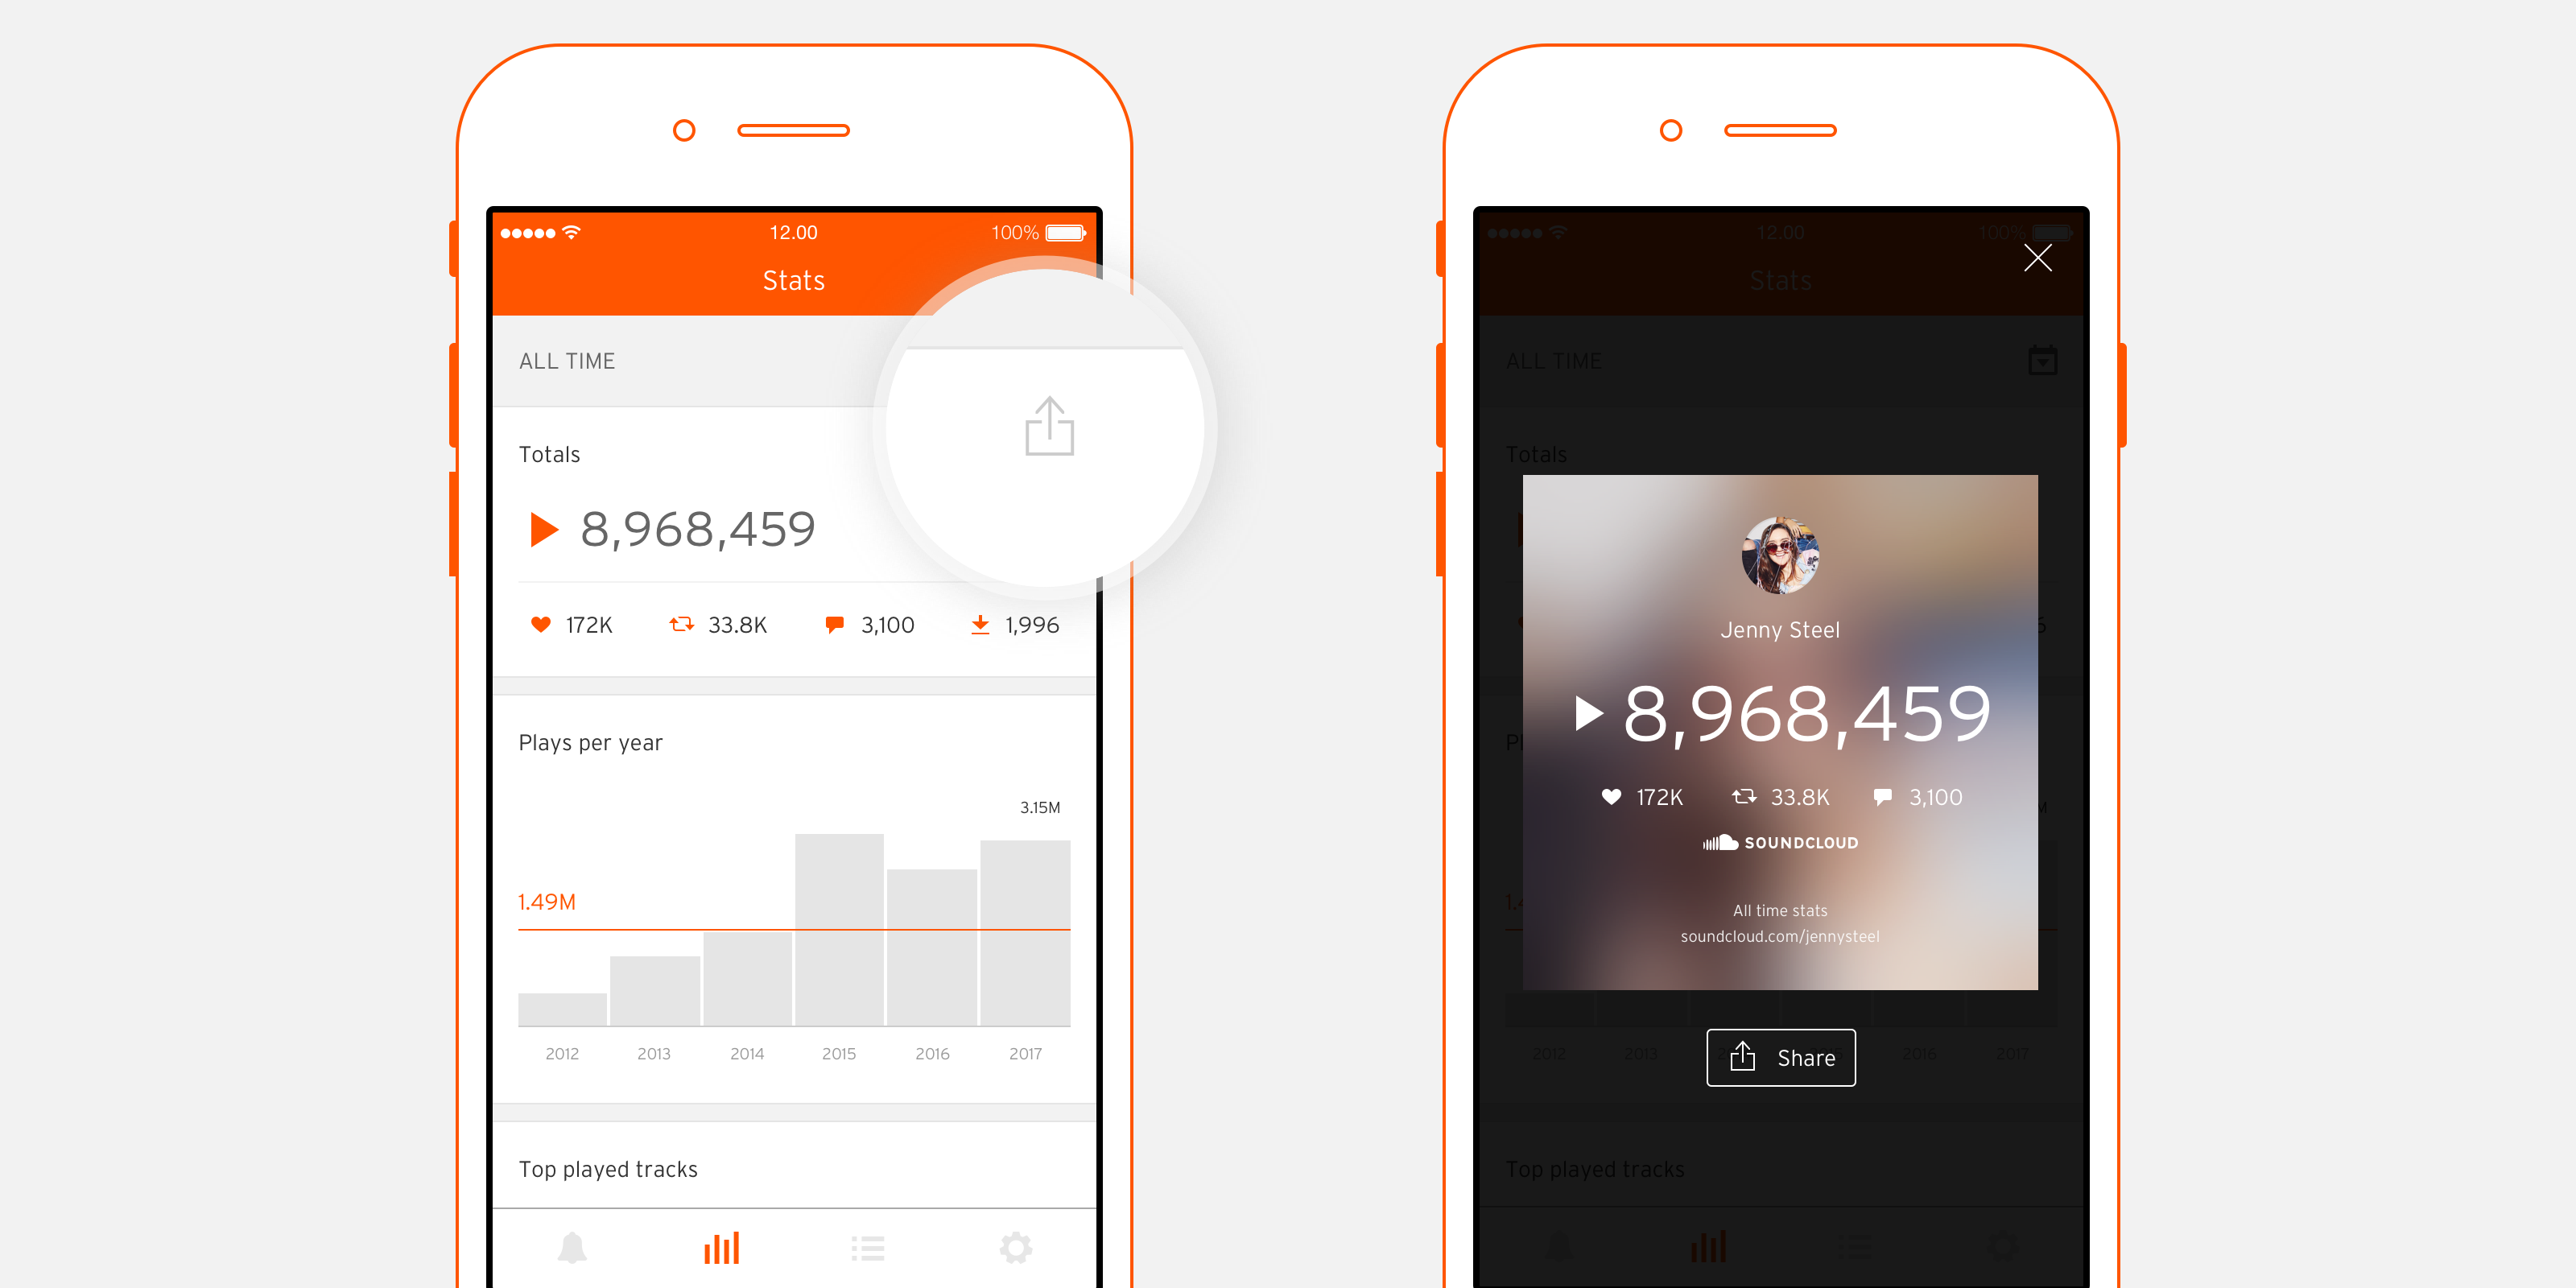 SoundCloud » Easily Share Your Stats with the World!